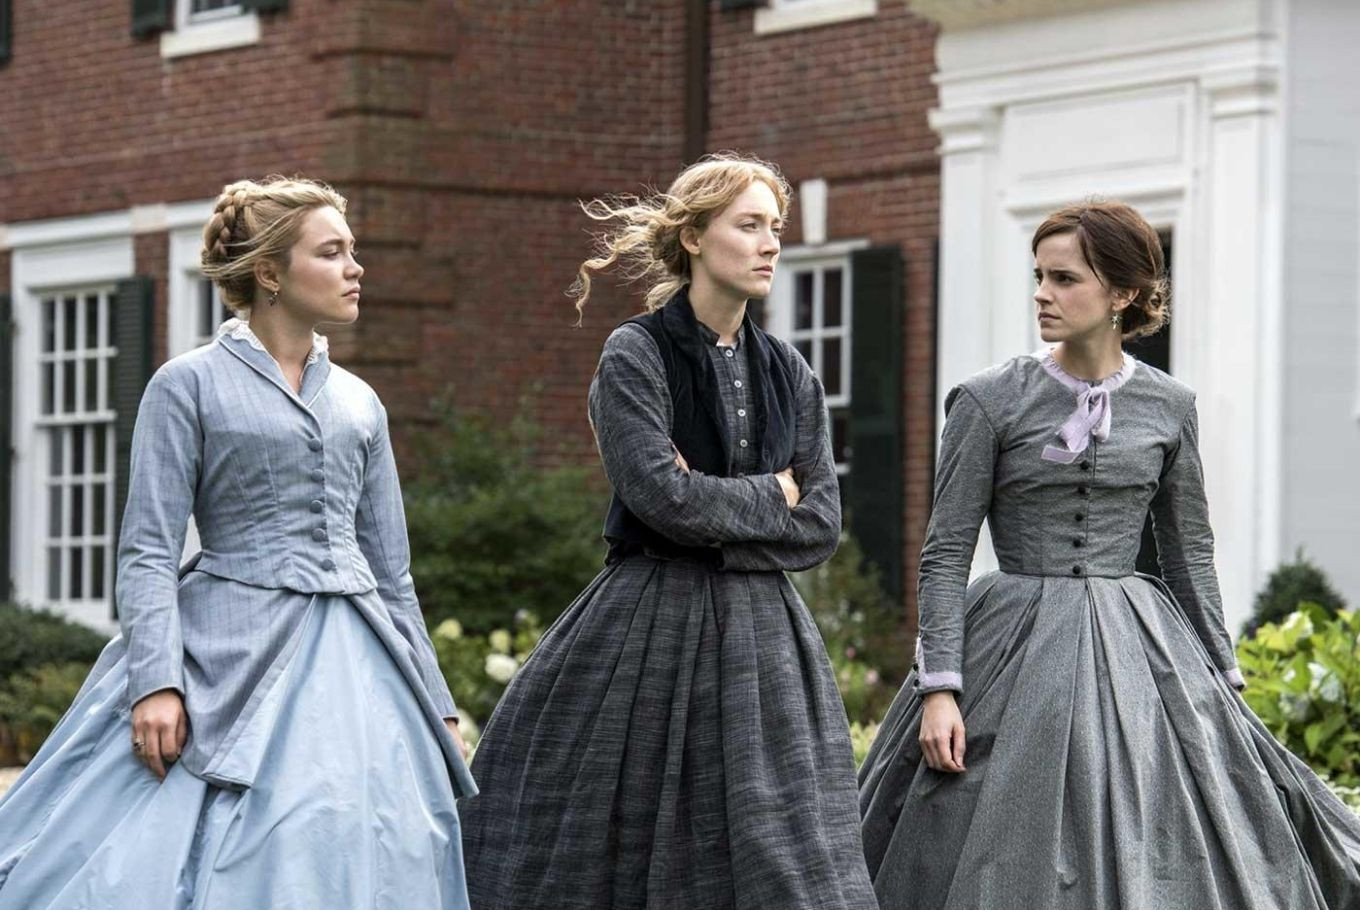 'Little Women': On women, money and ownership